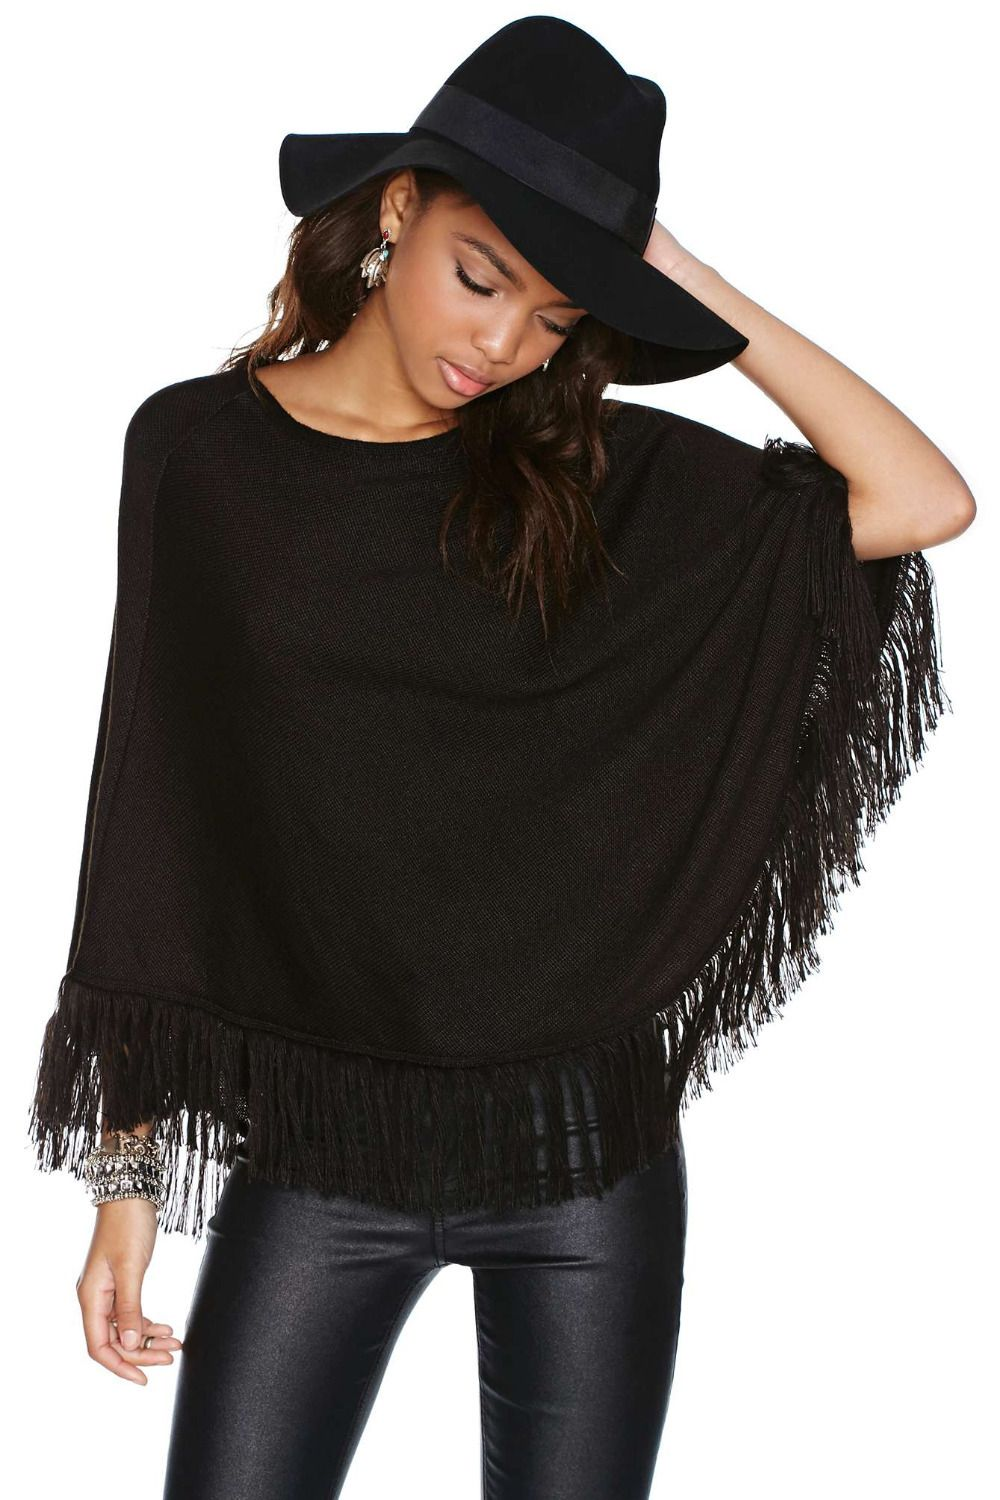 Find More Sweaters Information about Autumn Black Knitwear Women ...